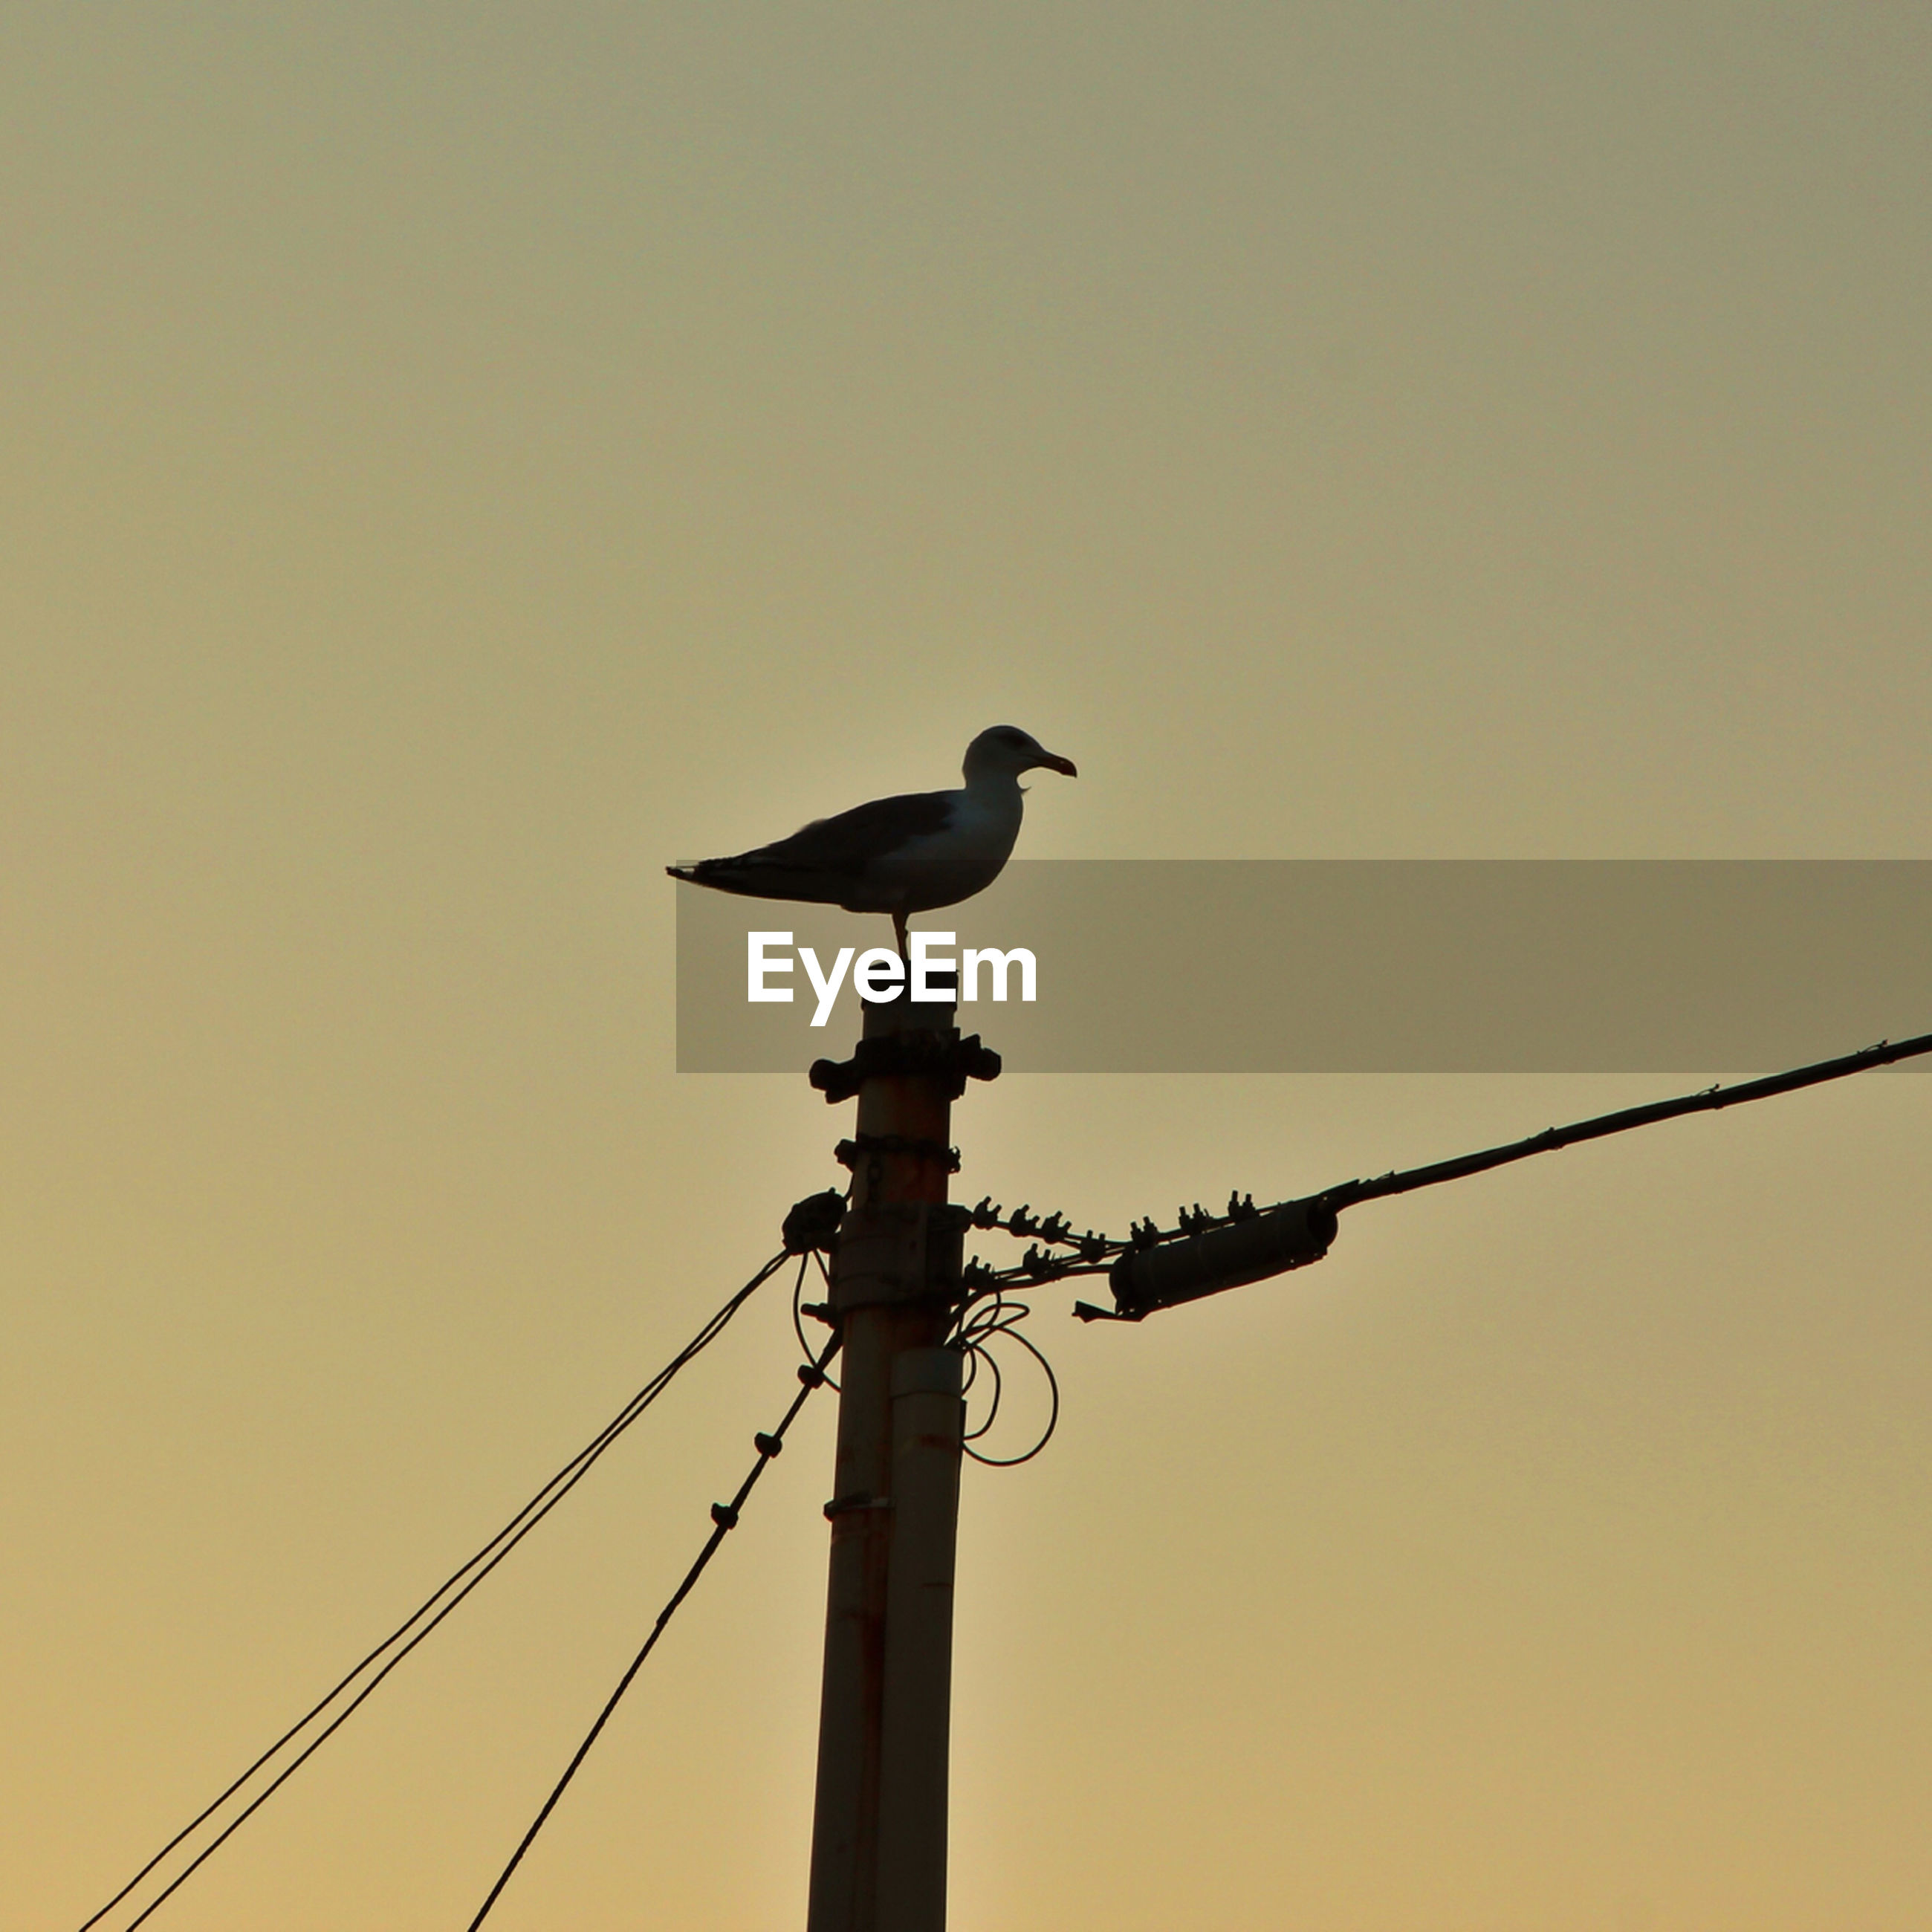 bird, animal themes, animals in the wild, wildlife, clear sky, perching, low angle view, one animal, silhouette, copy space, power line, cable, connection, pole, street light, full length, nature, avian, two animals, outdoors